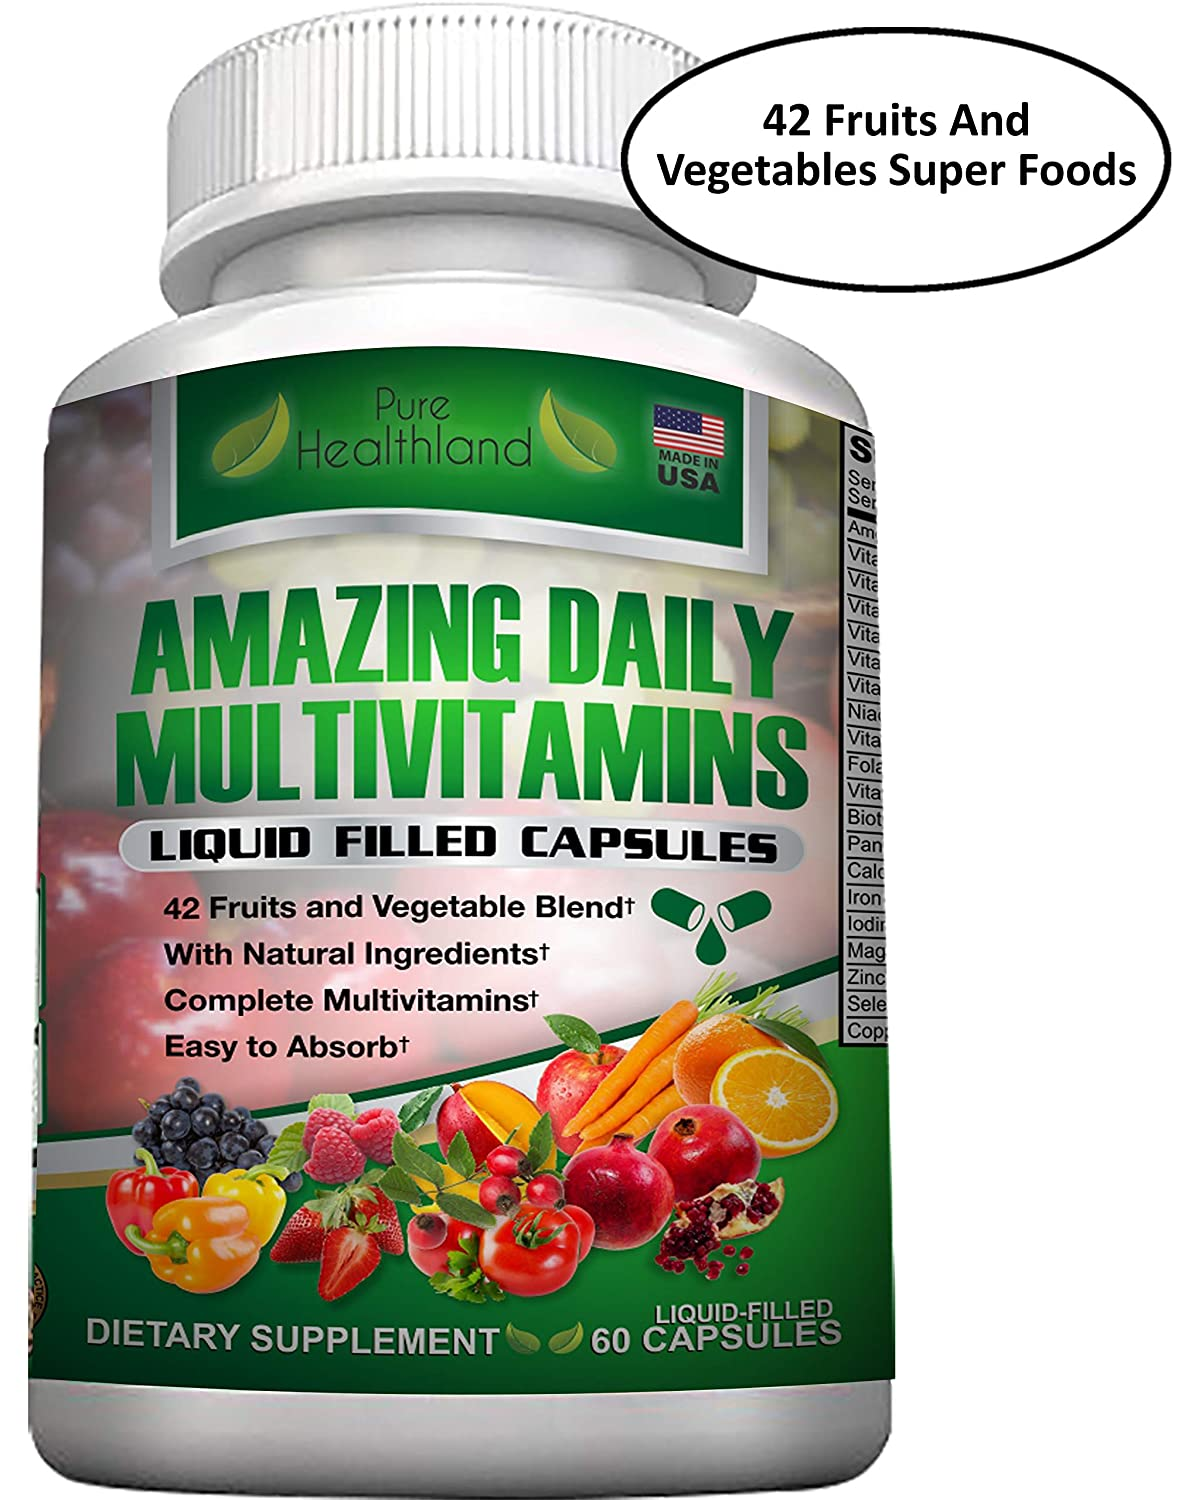 Food Based Daily Liquid Filled Multivitamin Supplement Capsules for Men Women Seniors with 42 Fruits Vegetables Blend, 21 Essential Vitamins Minerals. Easy to Swallow